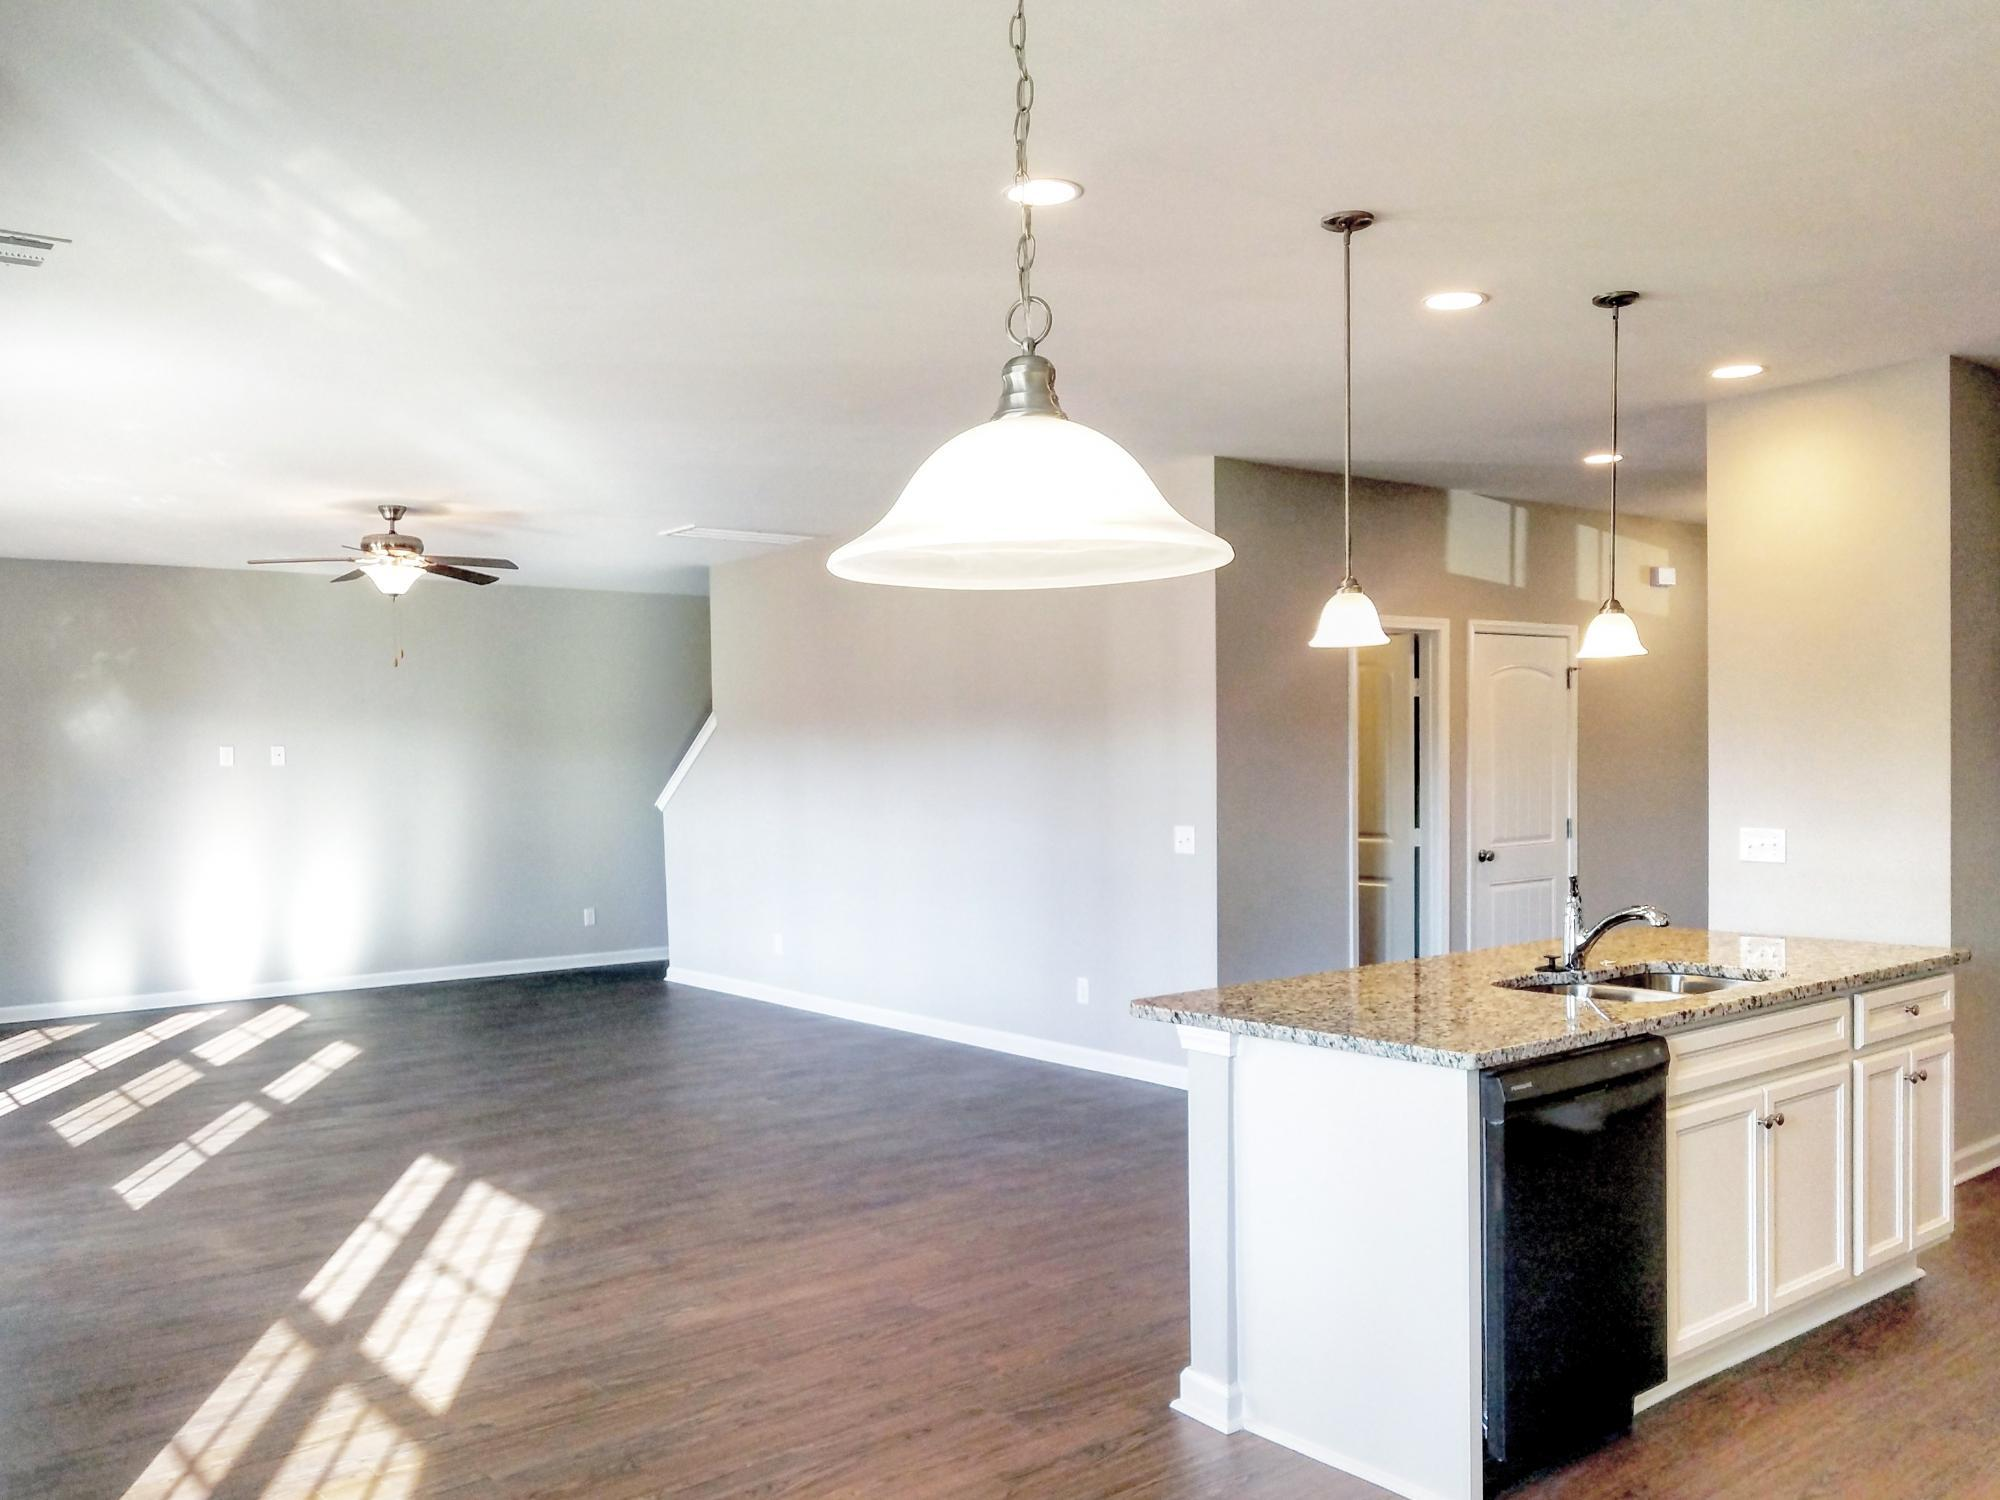 Kitchen featured in the Jasper By Konter Quality Homes in Savannah, GA